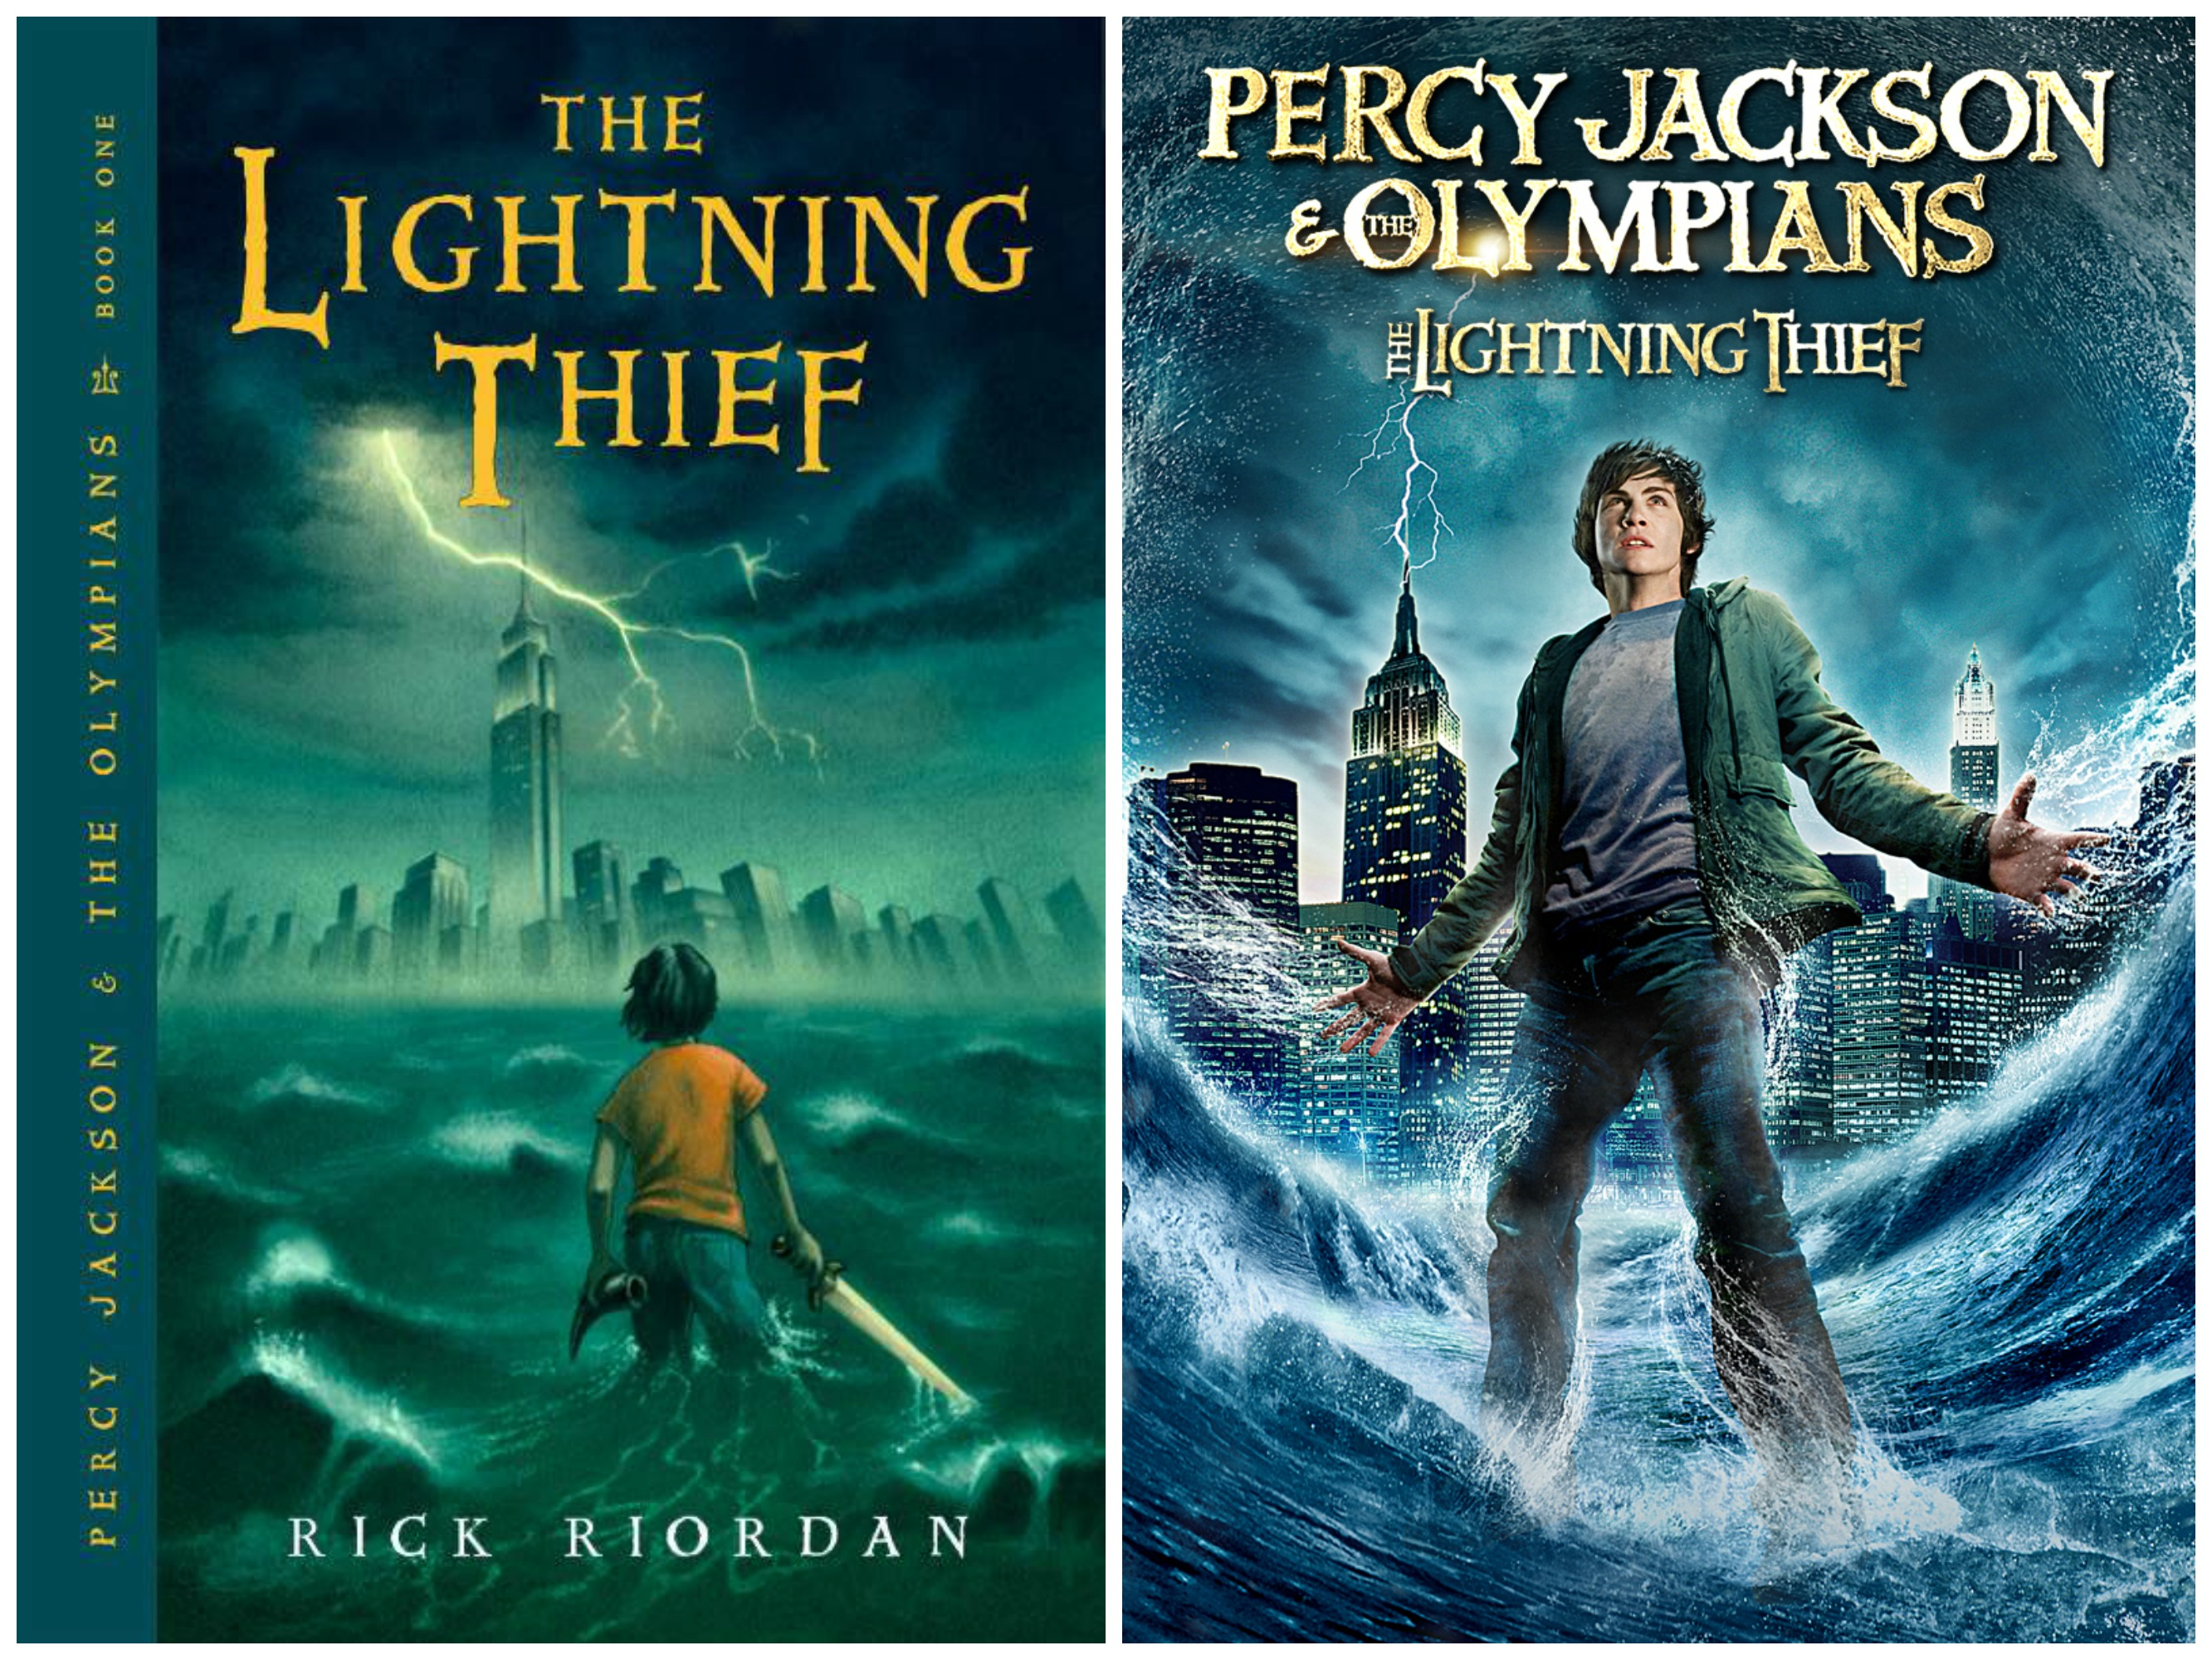 A Throwback Thursday The Percy Jackson Movies